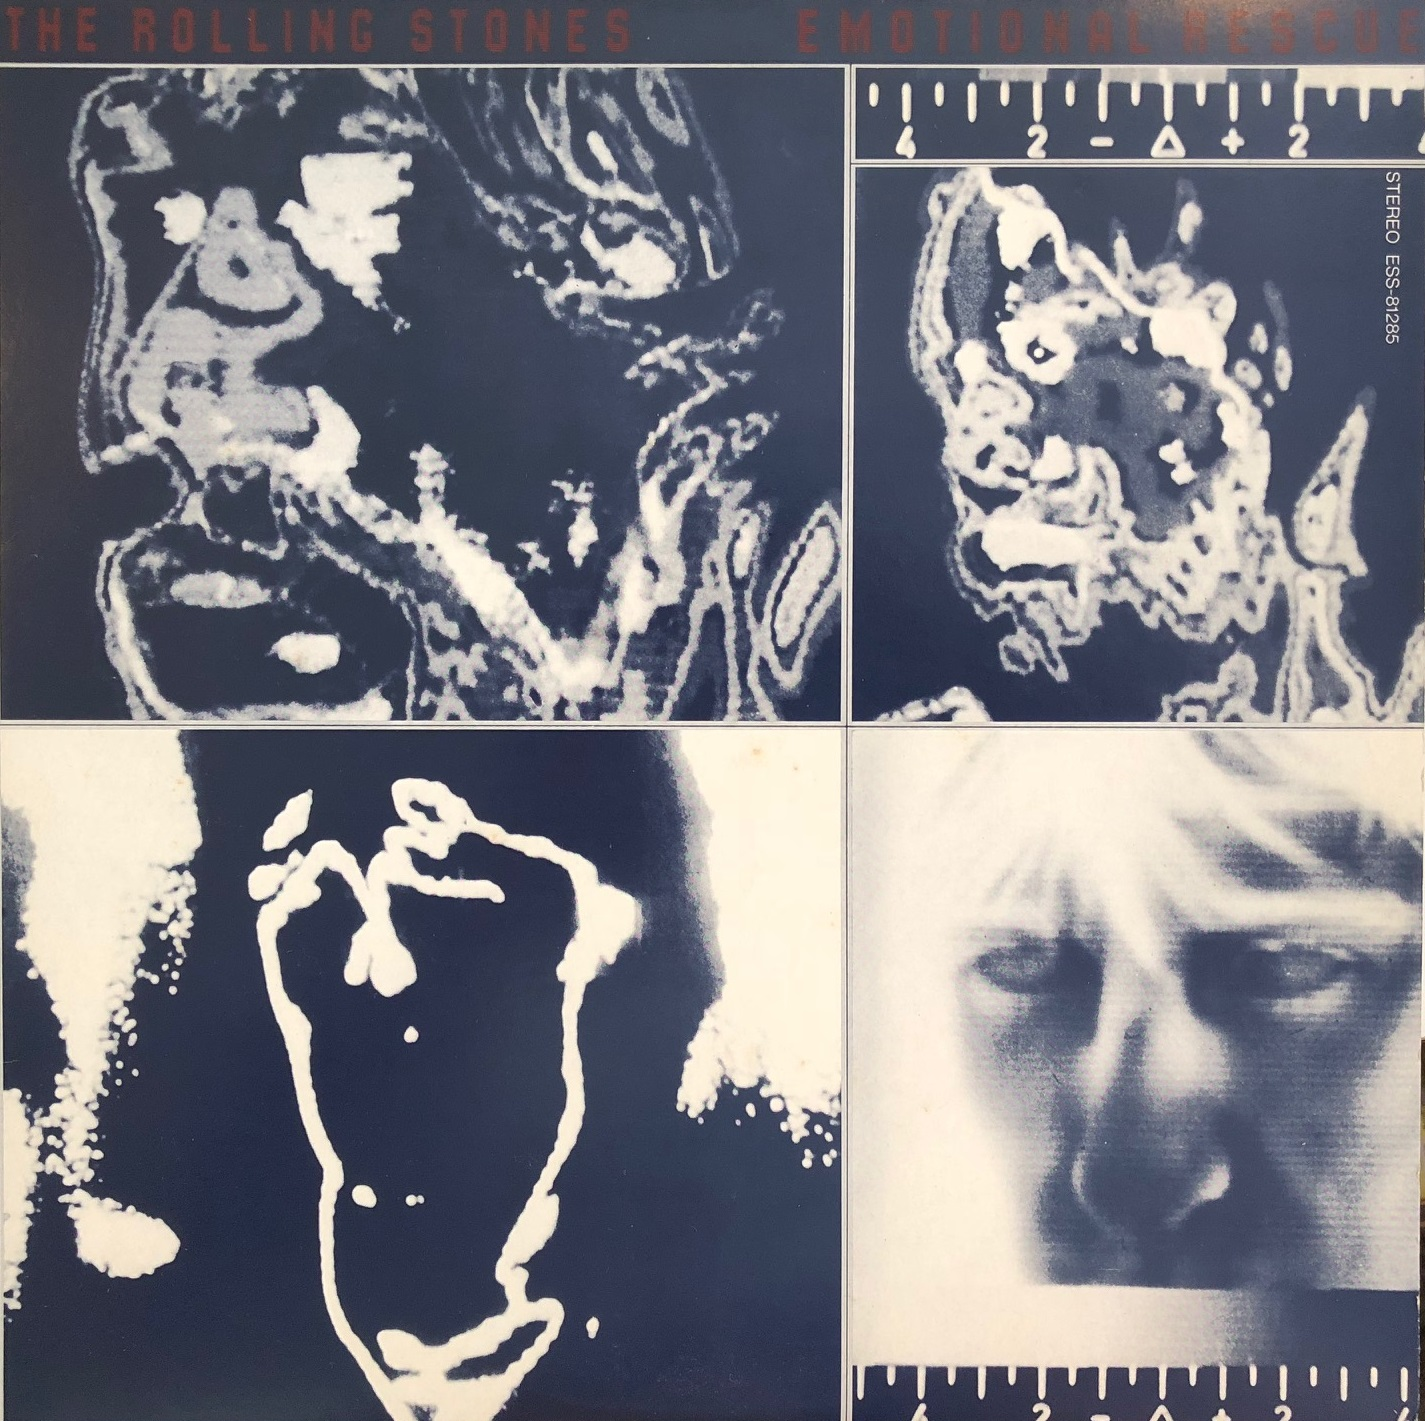 ROLLING STONES / EMOTIONAL RESCUE